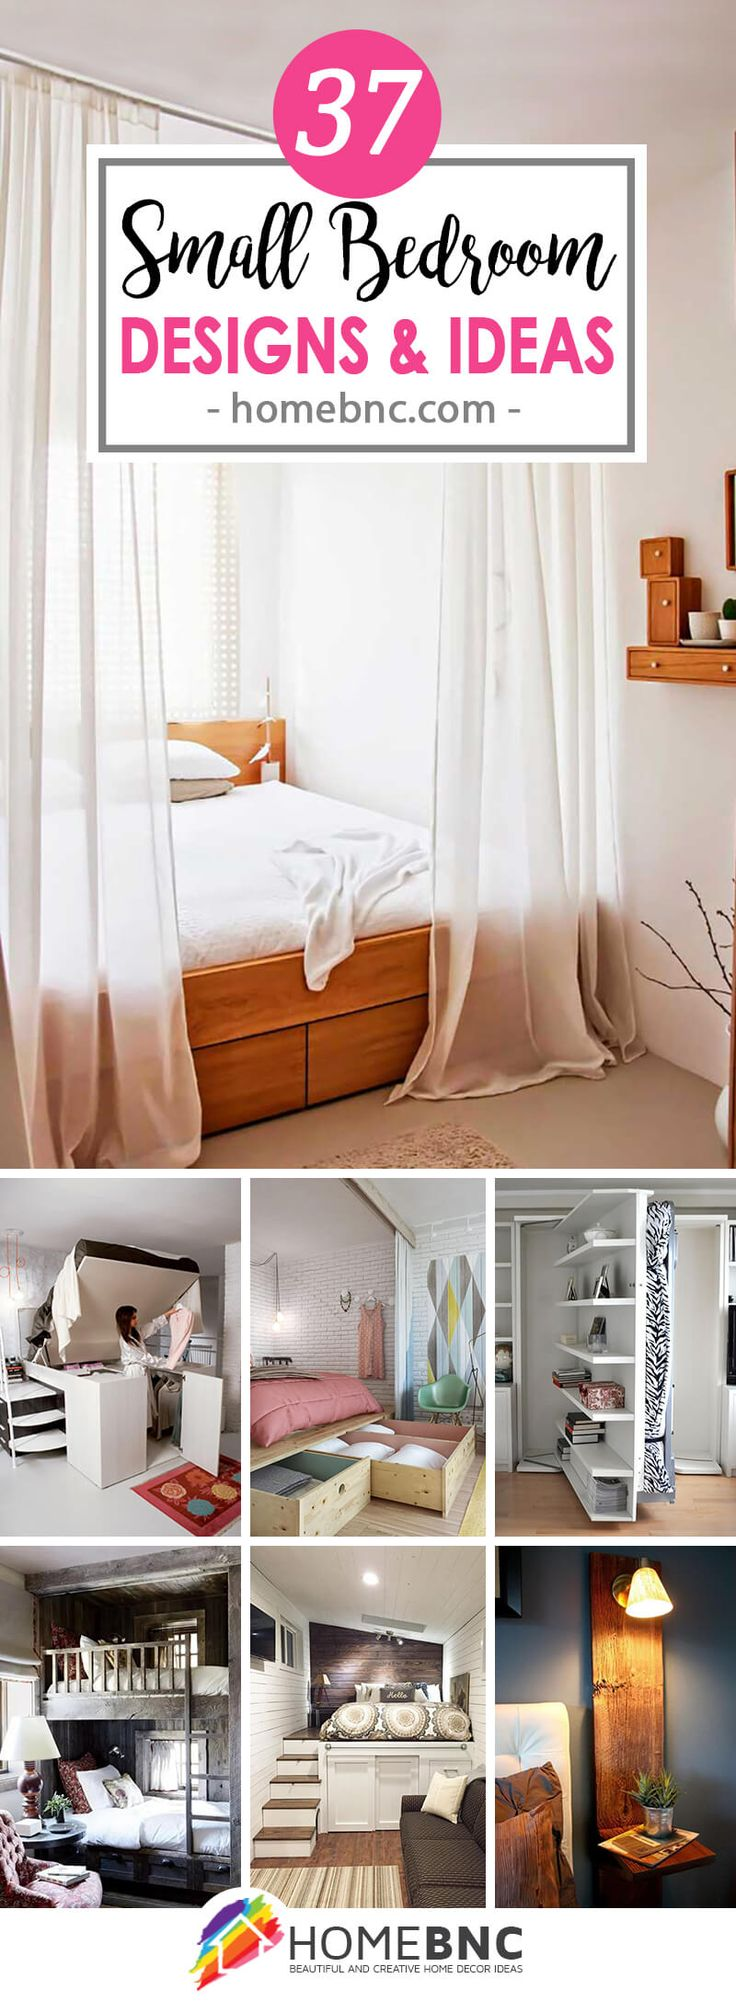 37 Small Bedroom Designs and Ideas for Maximizing Your Space and Adding a Splash of Personality